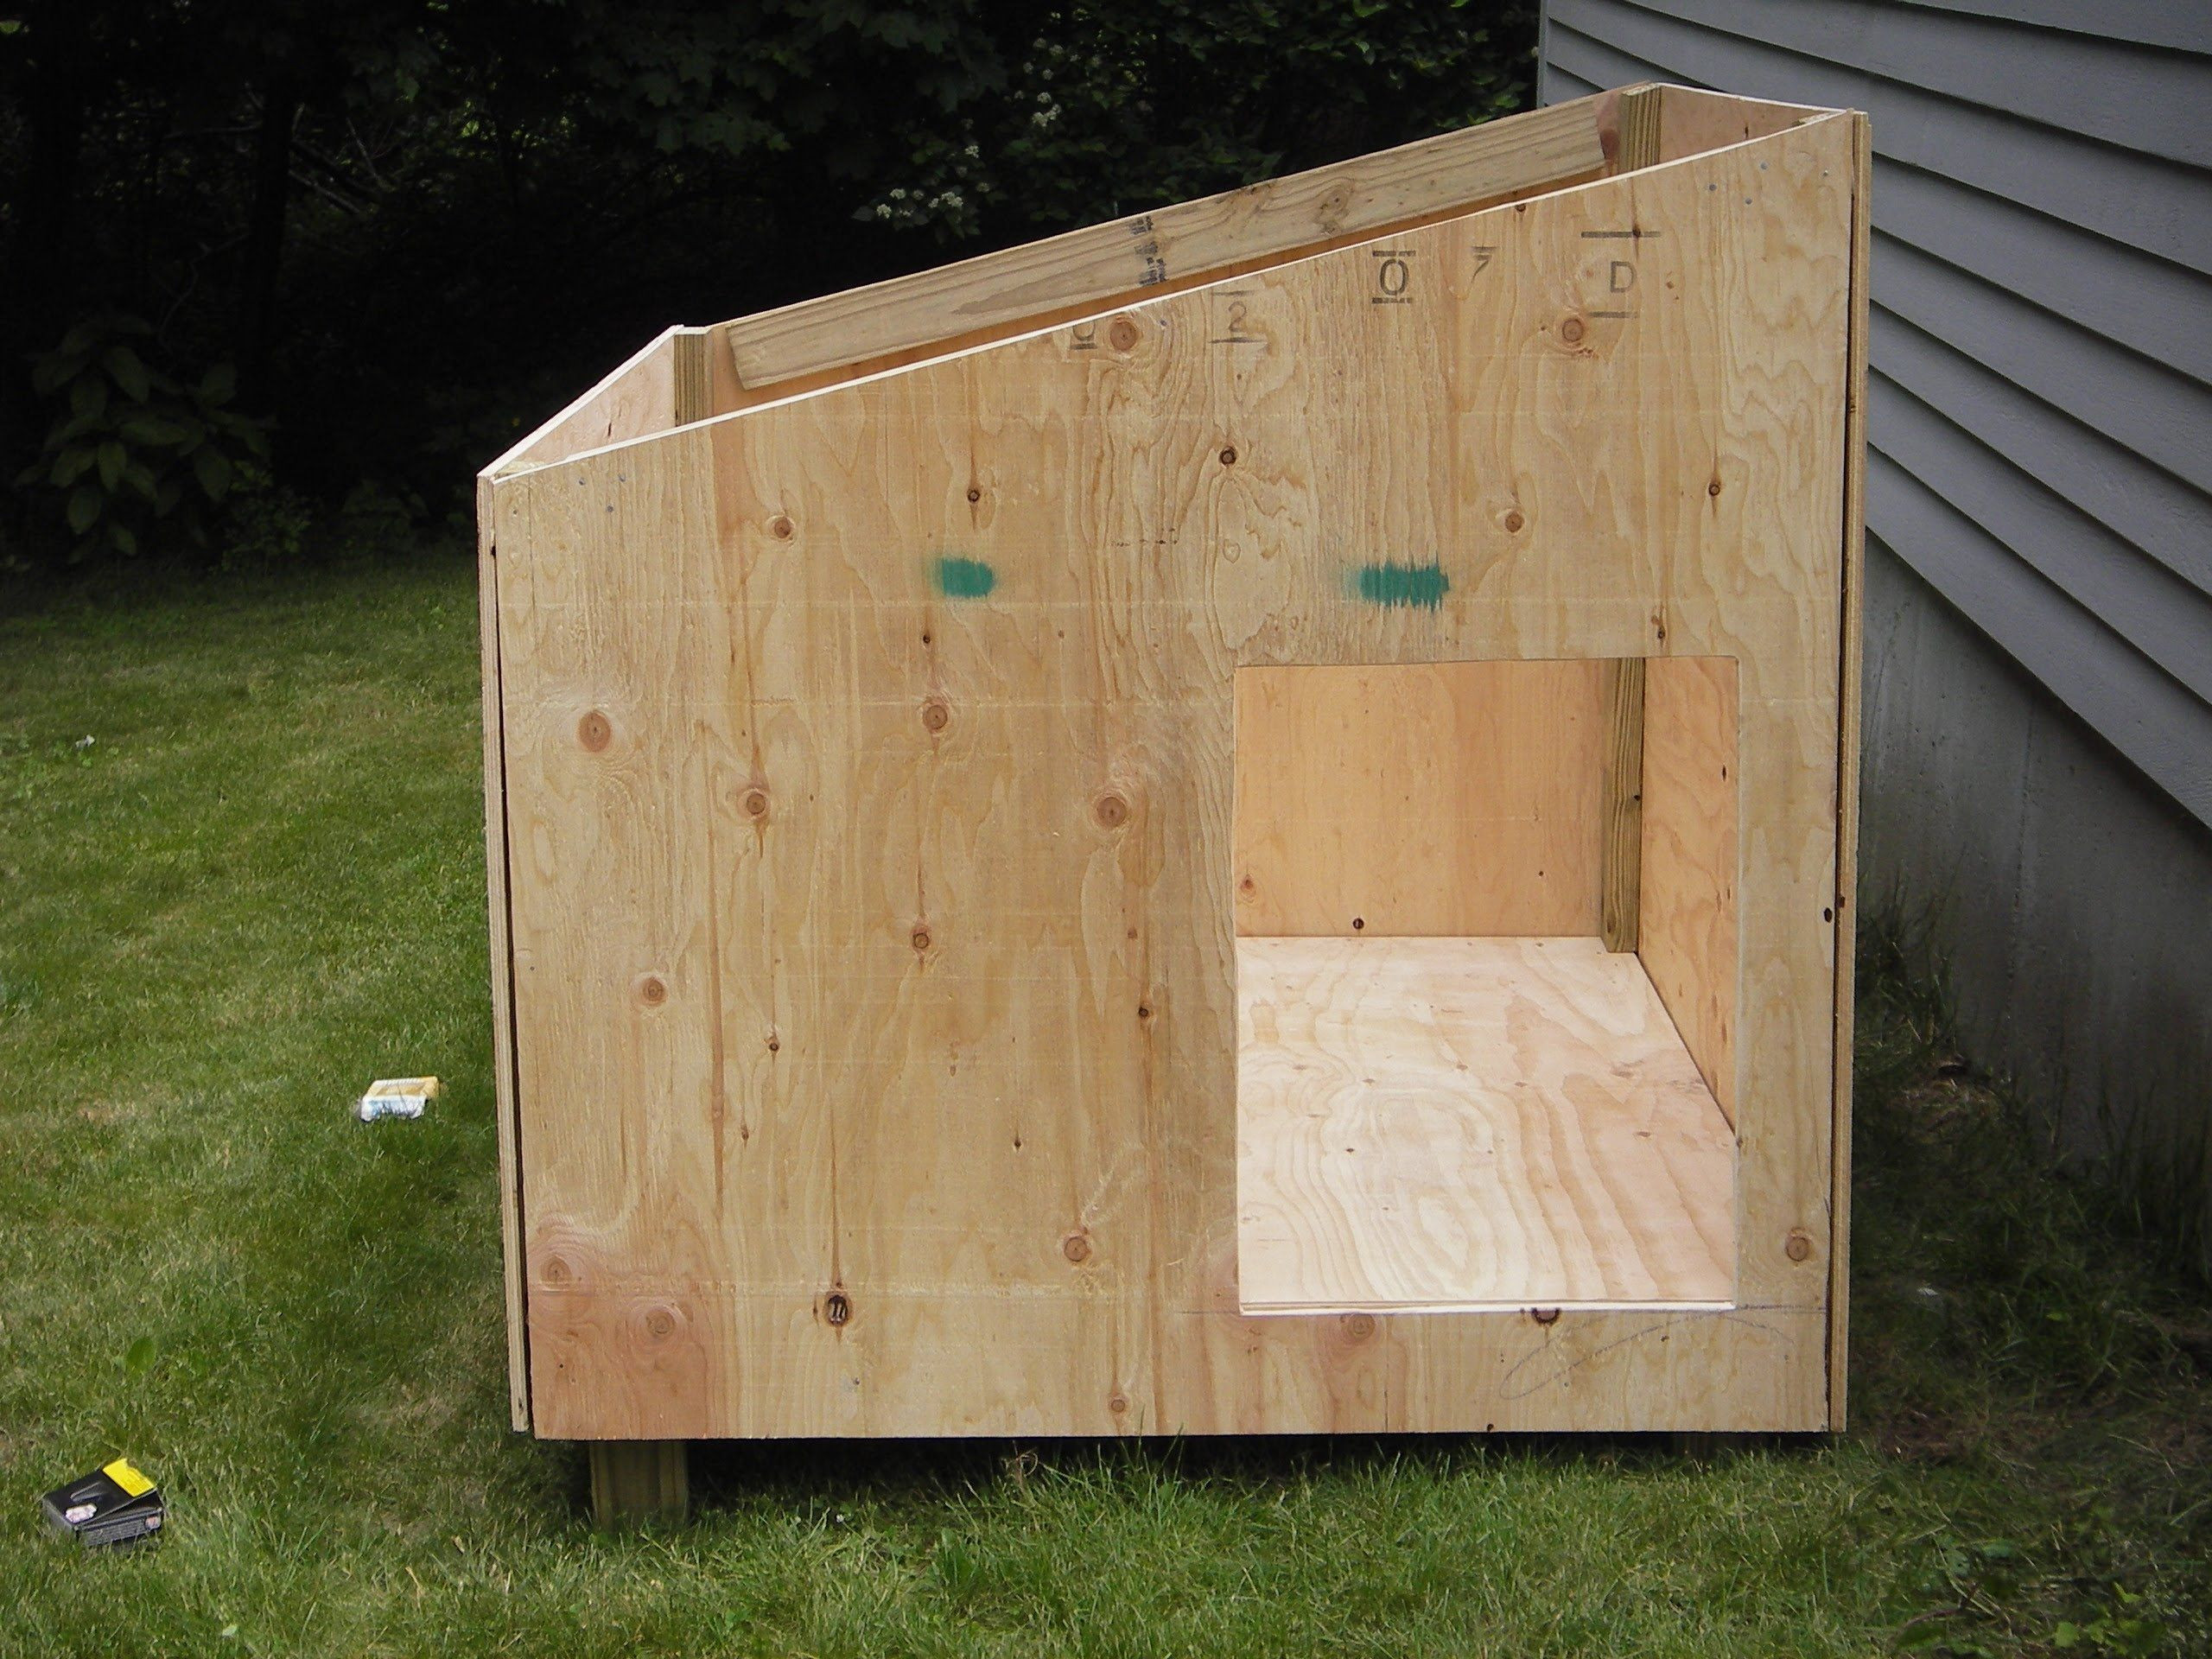 Best ideas about DIY Dog House Kits . Save or Pin Easy diy dog house plans Crafts Now.